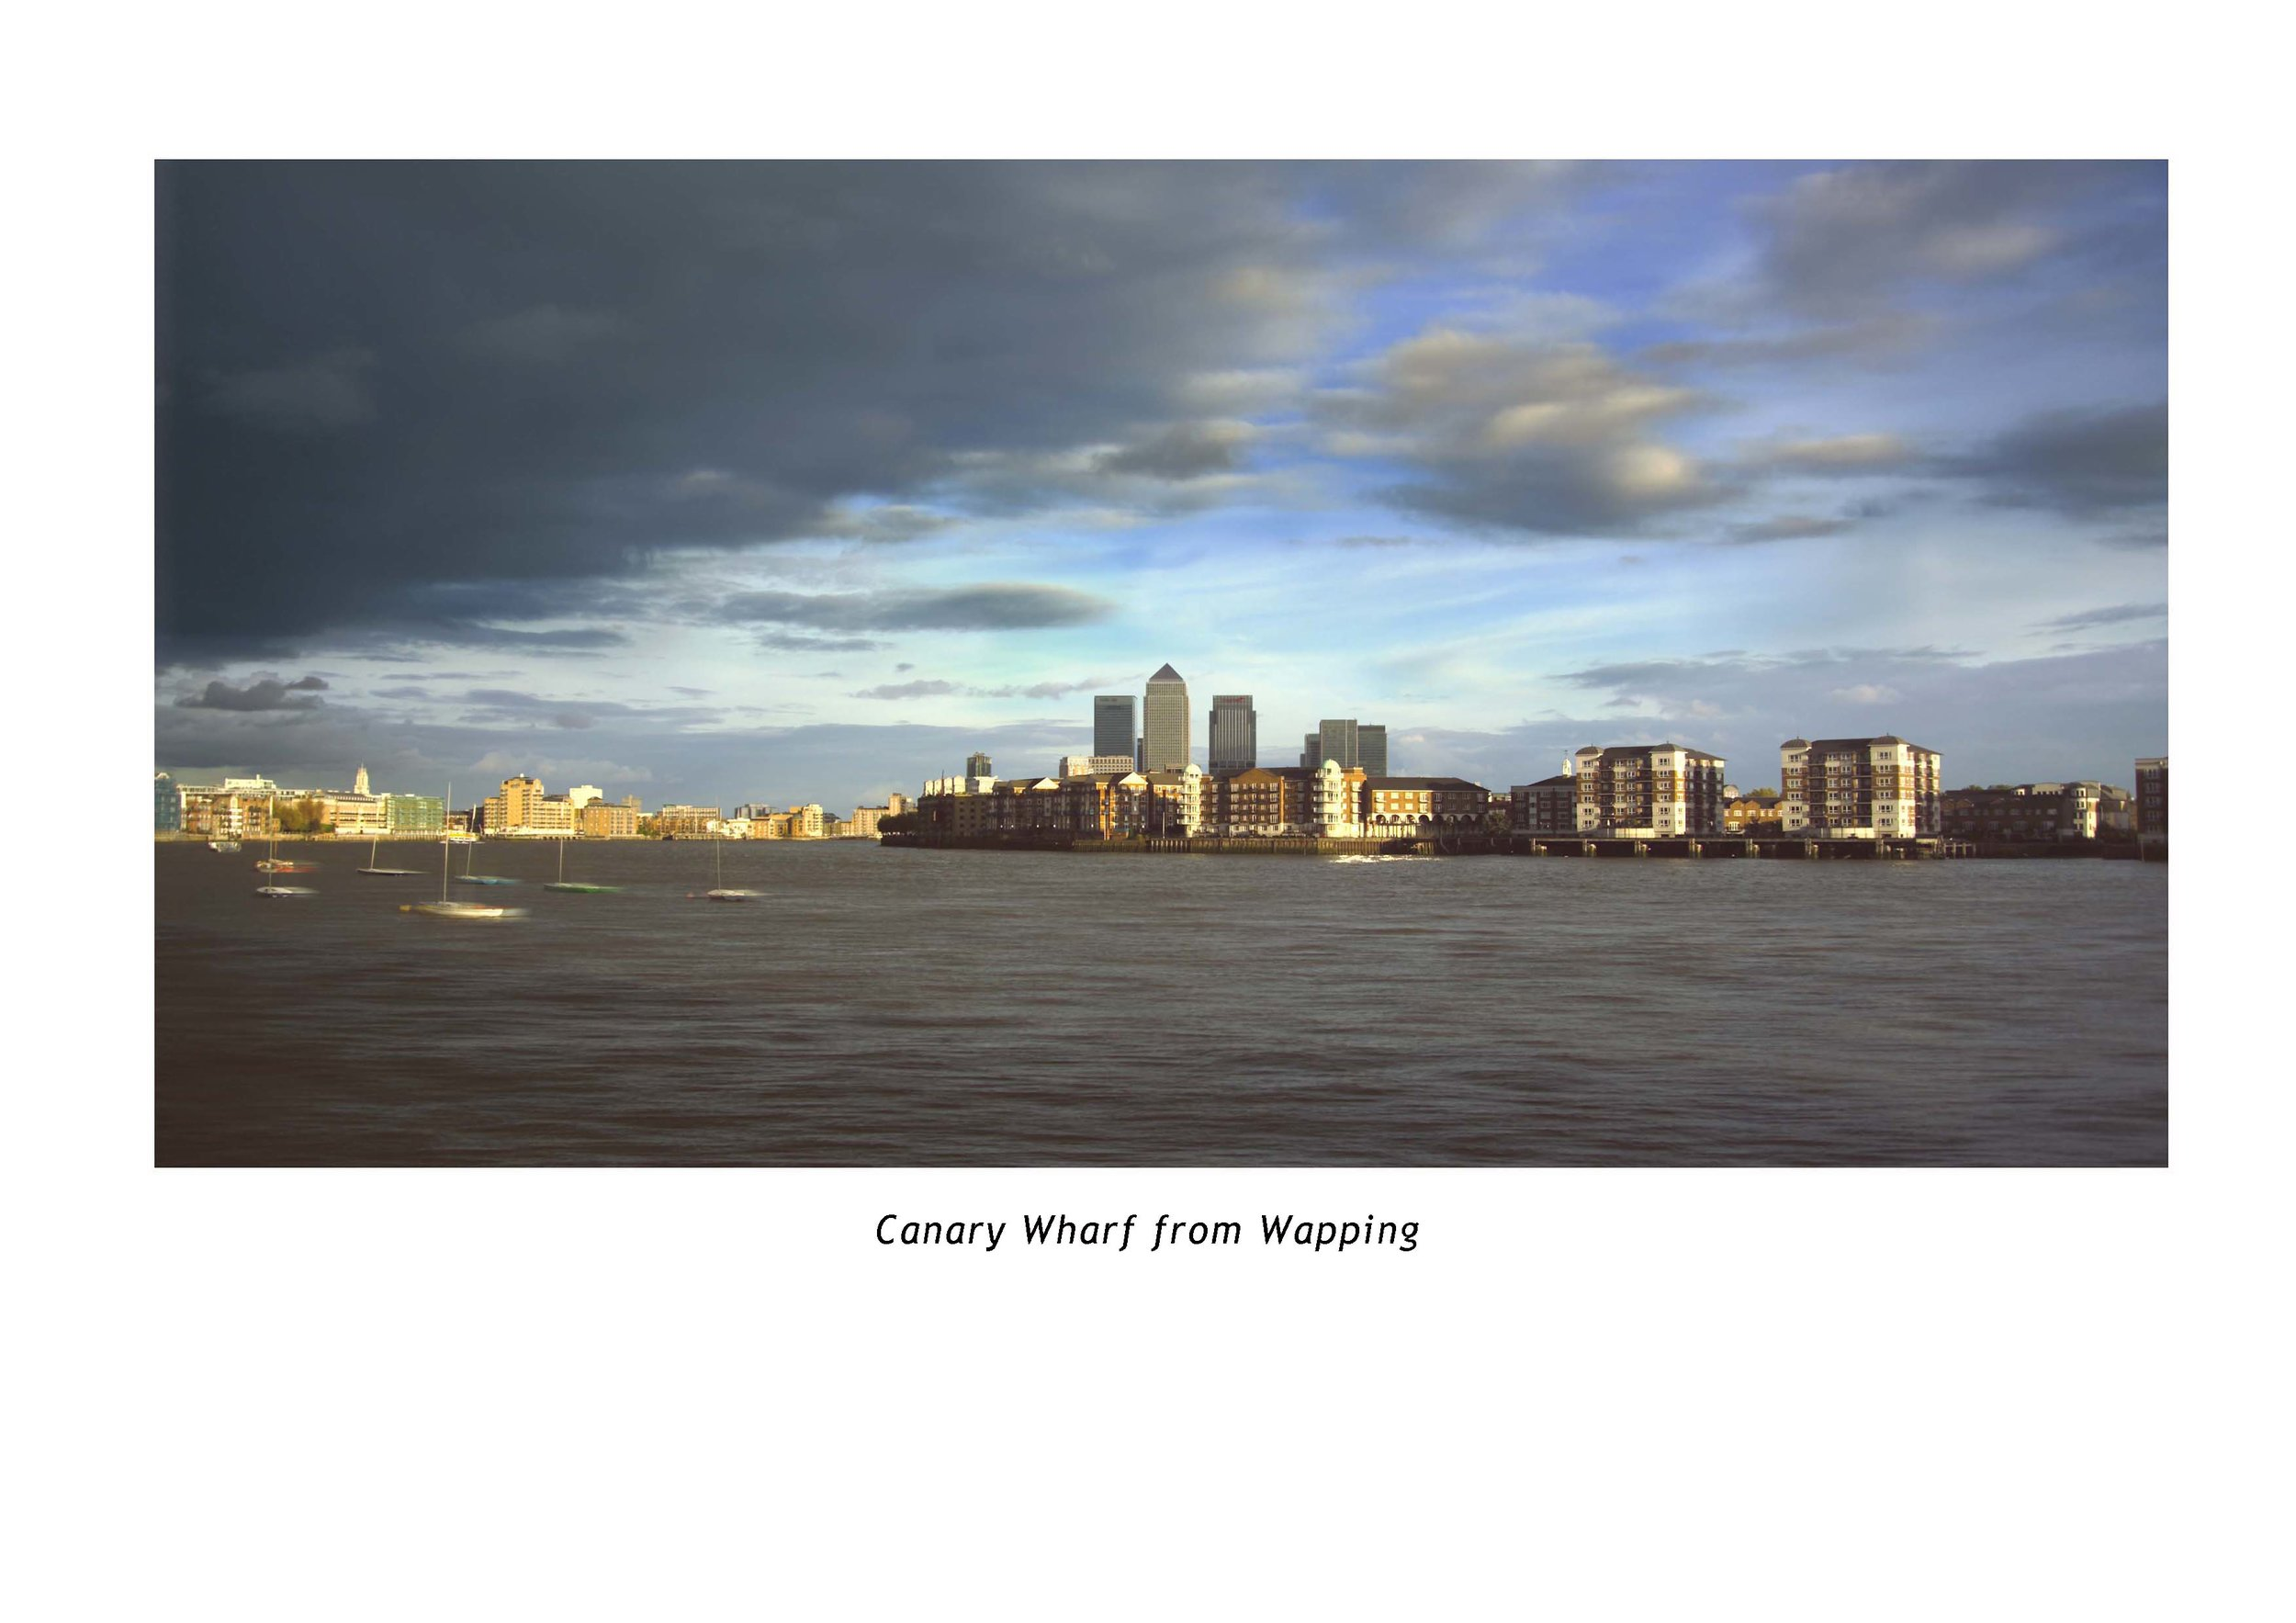 CANARY WHARF FROM WAPPING].JPG